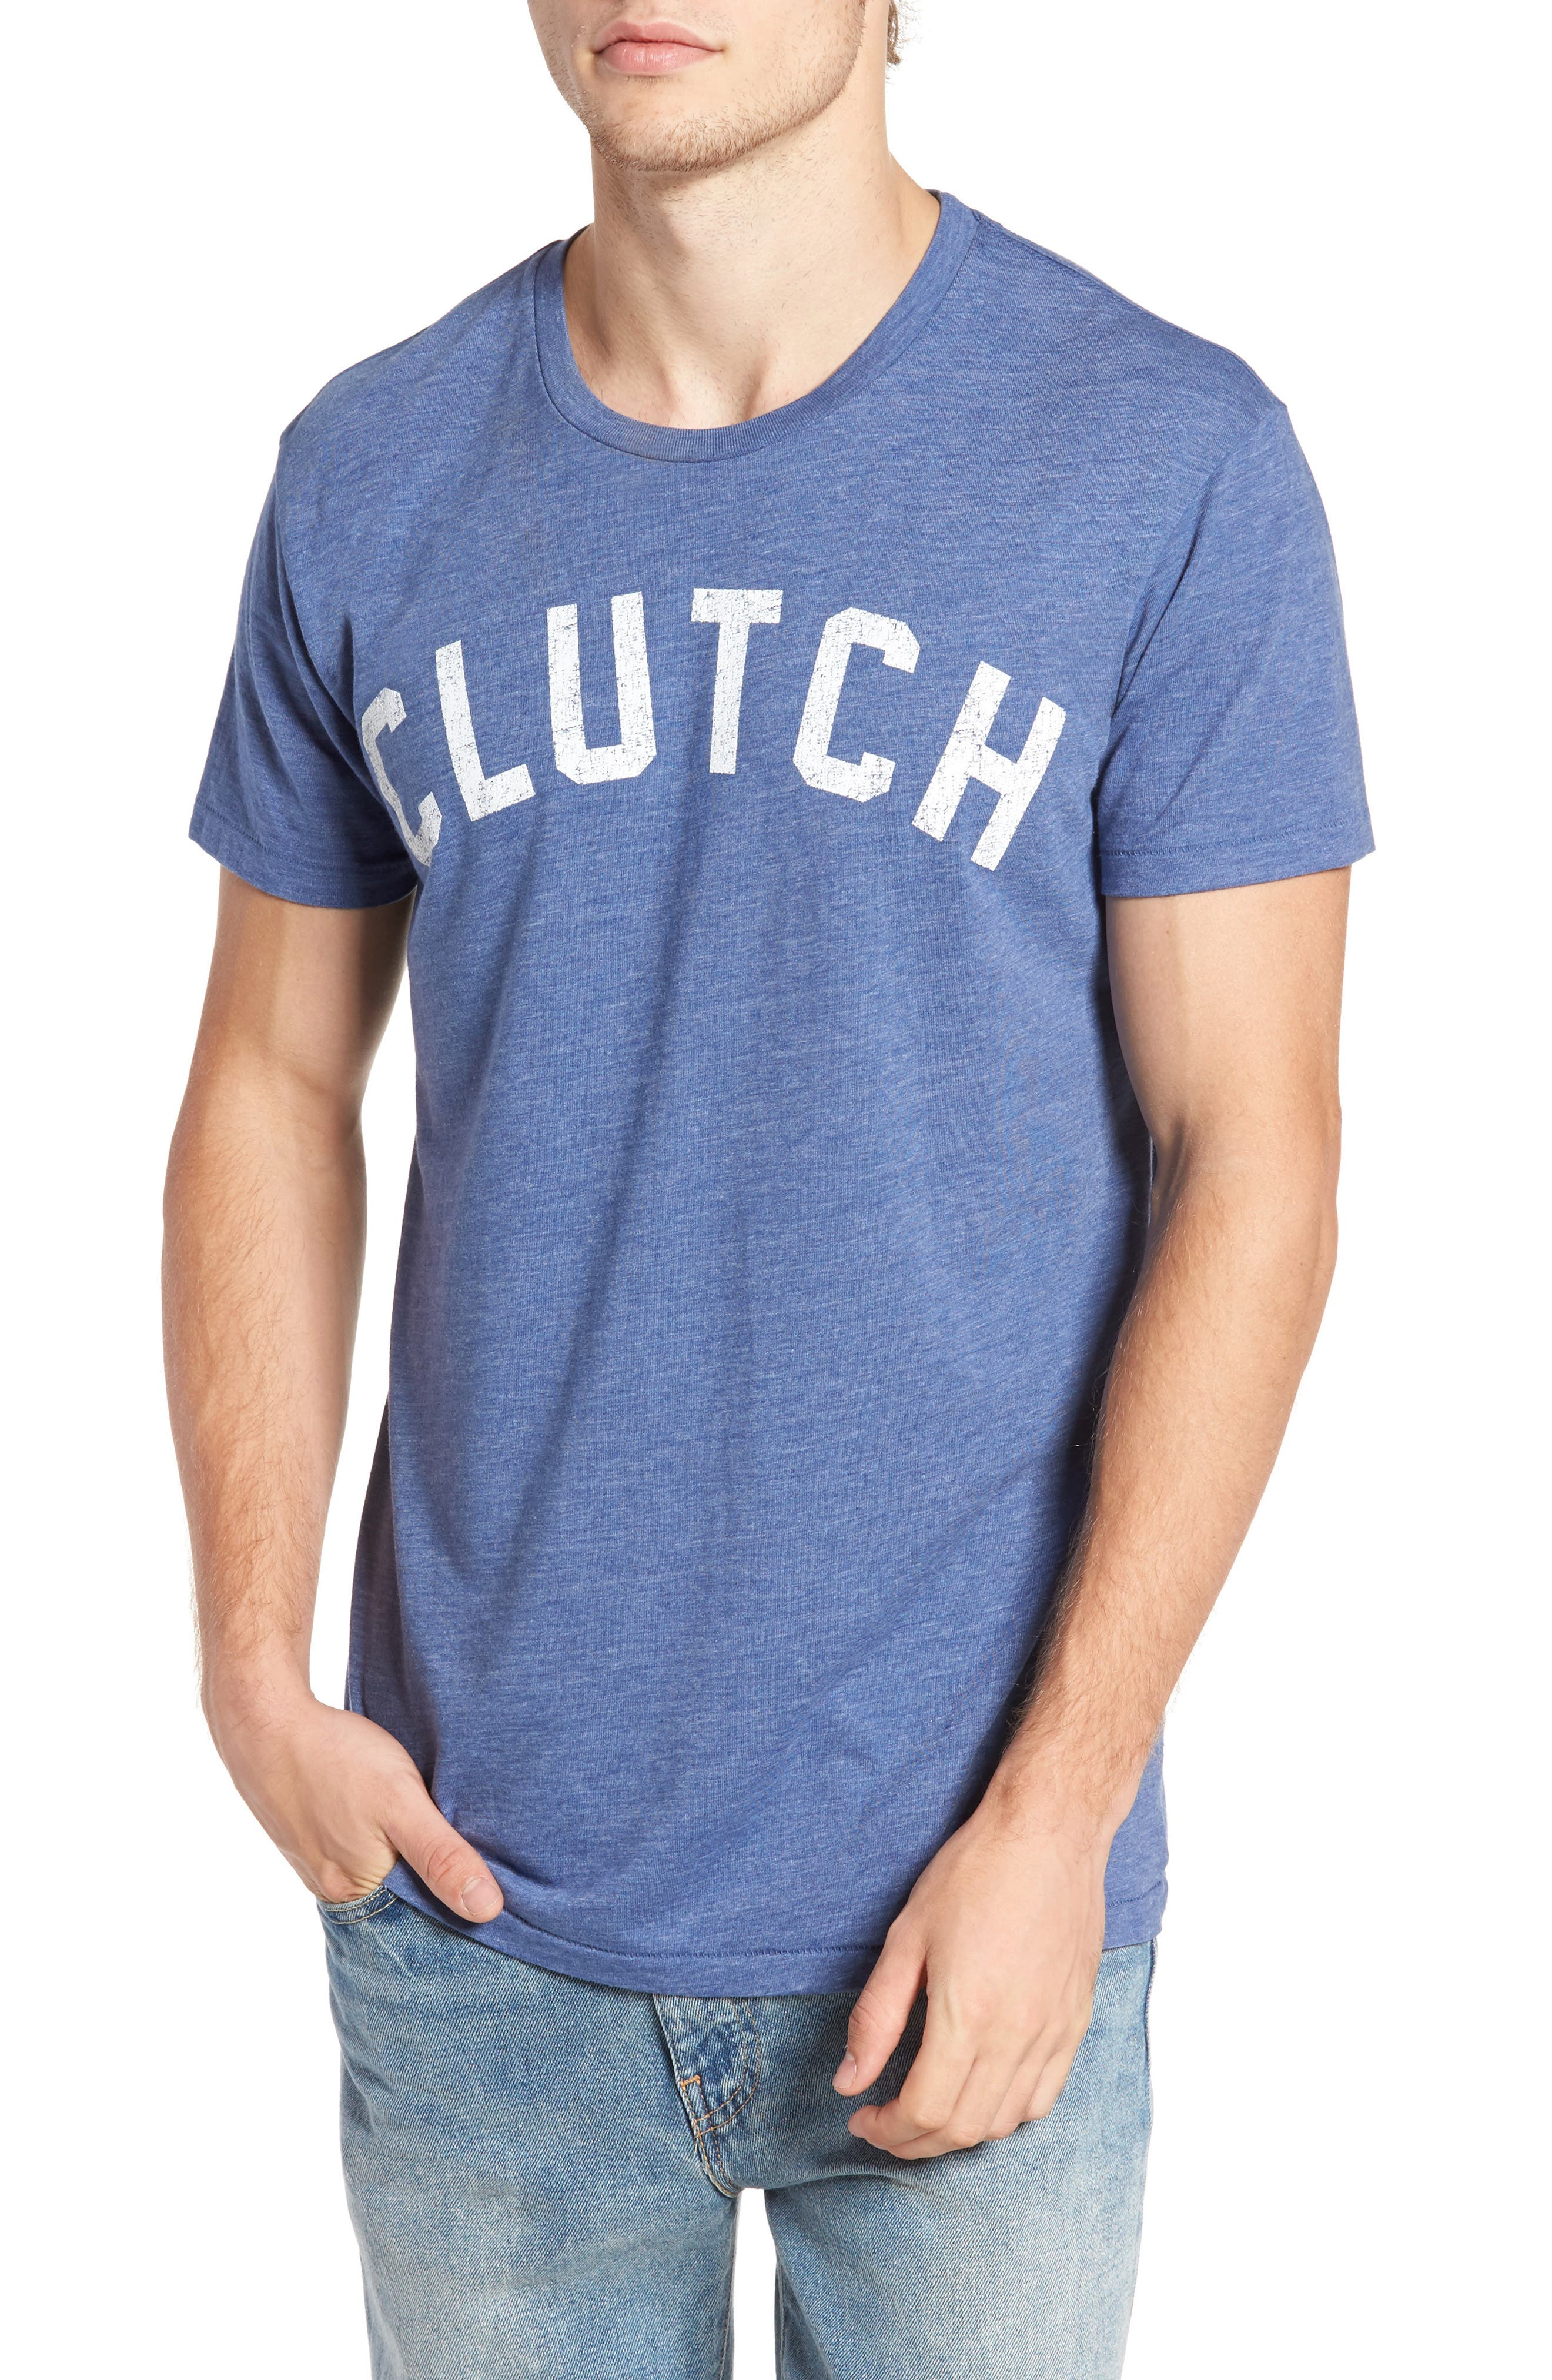 Clutch Graphic T-Shirt,                             Main thumbnail 1, color,                             401